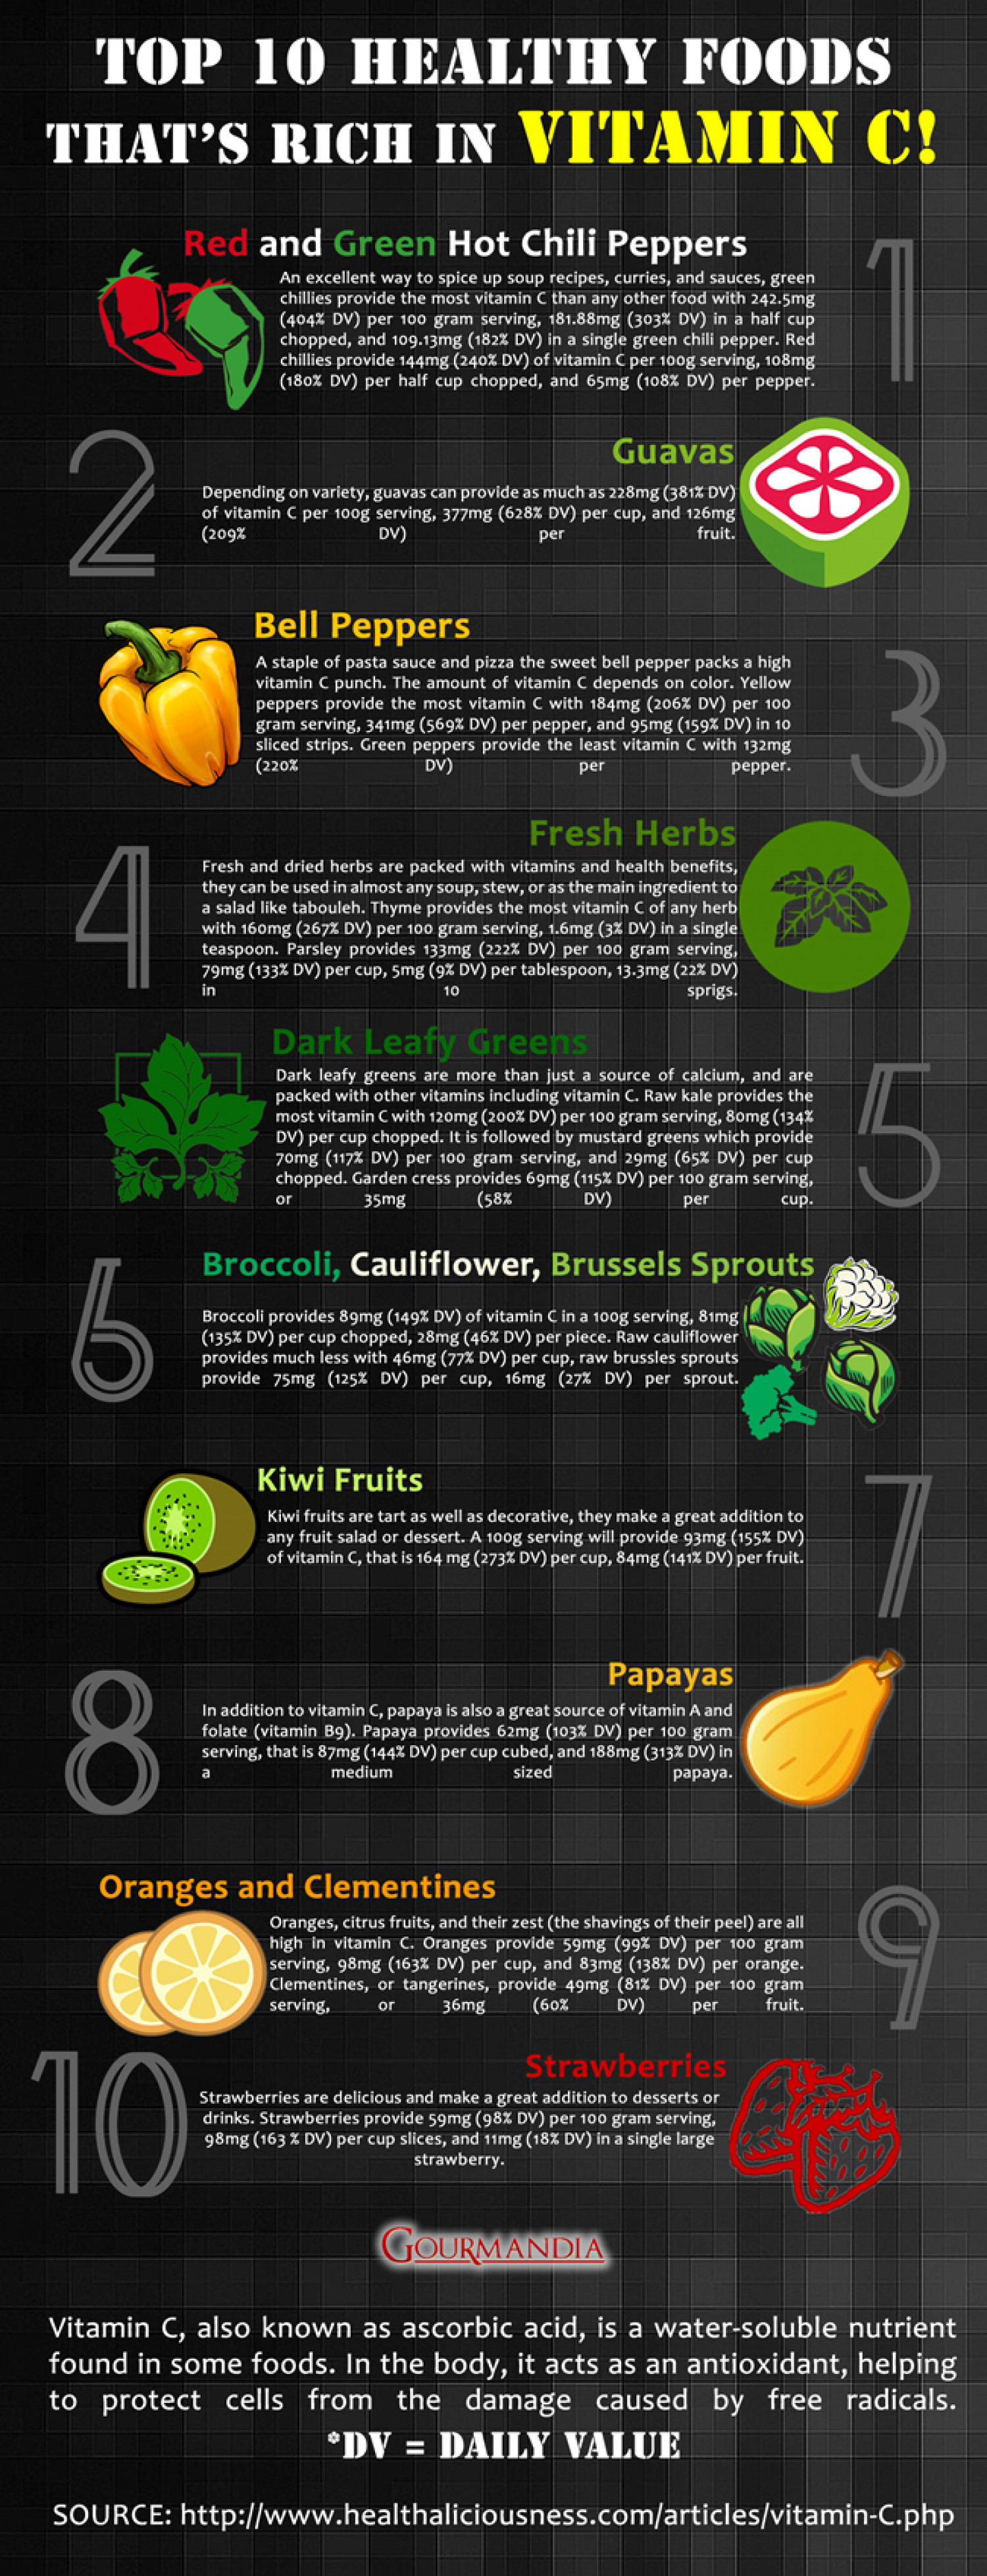 Top 10 Healthy Foods that's Rich in Vitamin C Infographic